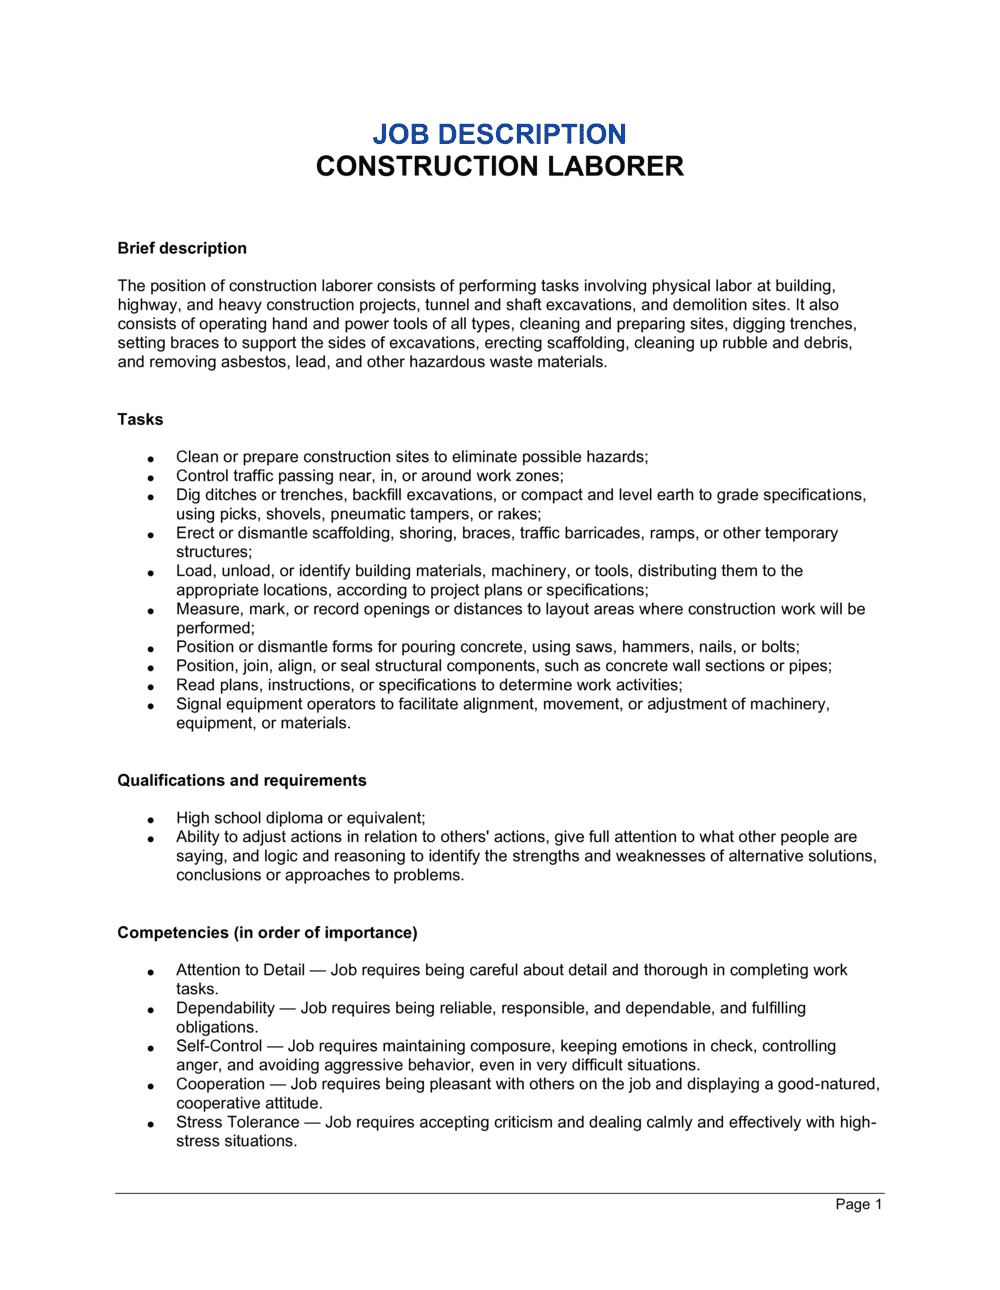 Business-in-a-Box's Construction Laborer Job Description Template